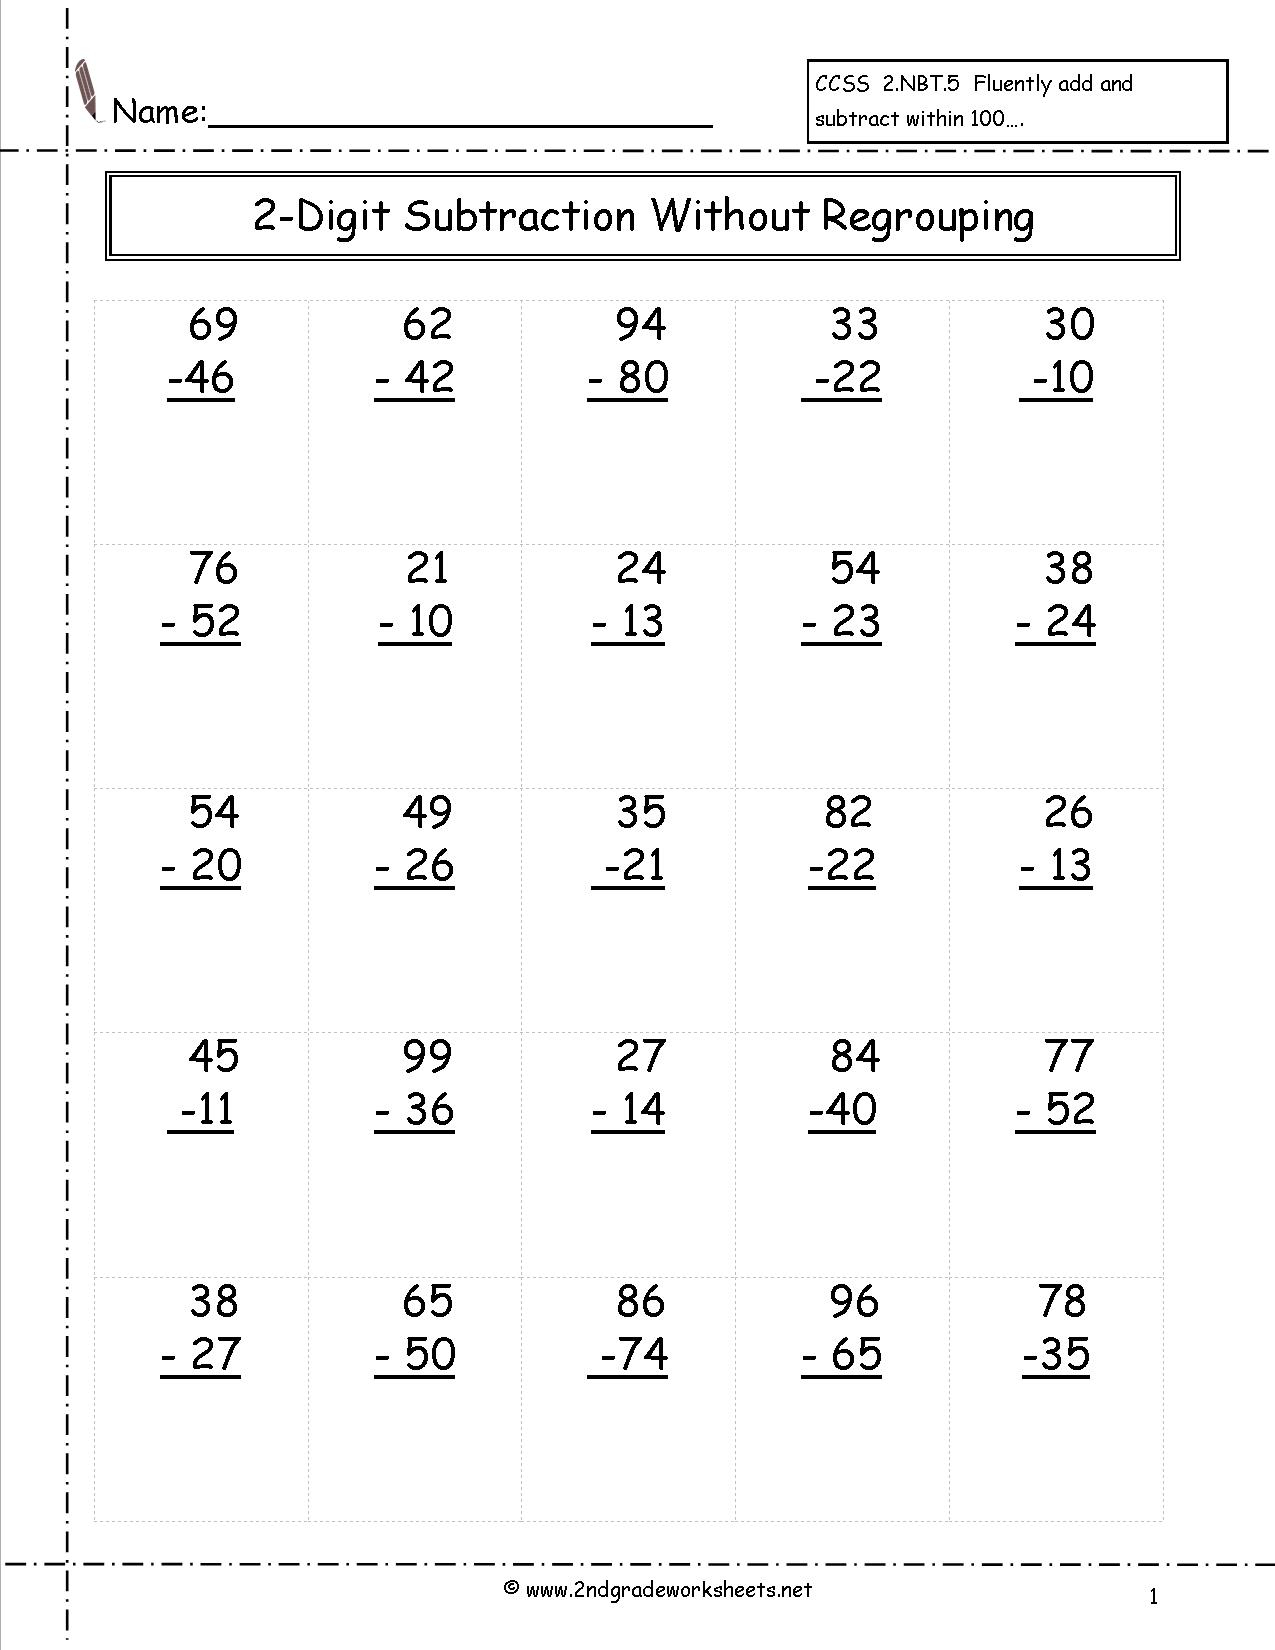 Two Digit Subtraction Worksheets | Printable Subtraction Worksheets With Regrouping